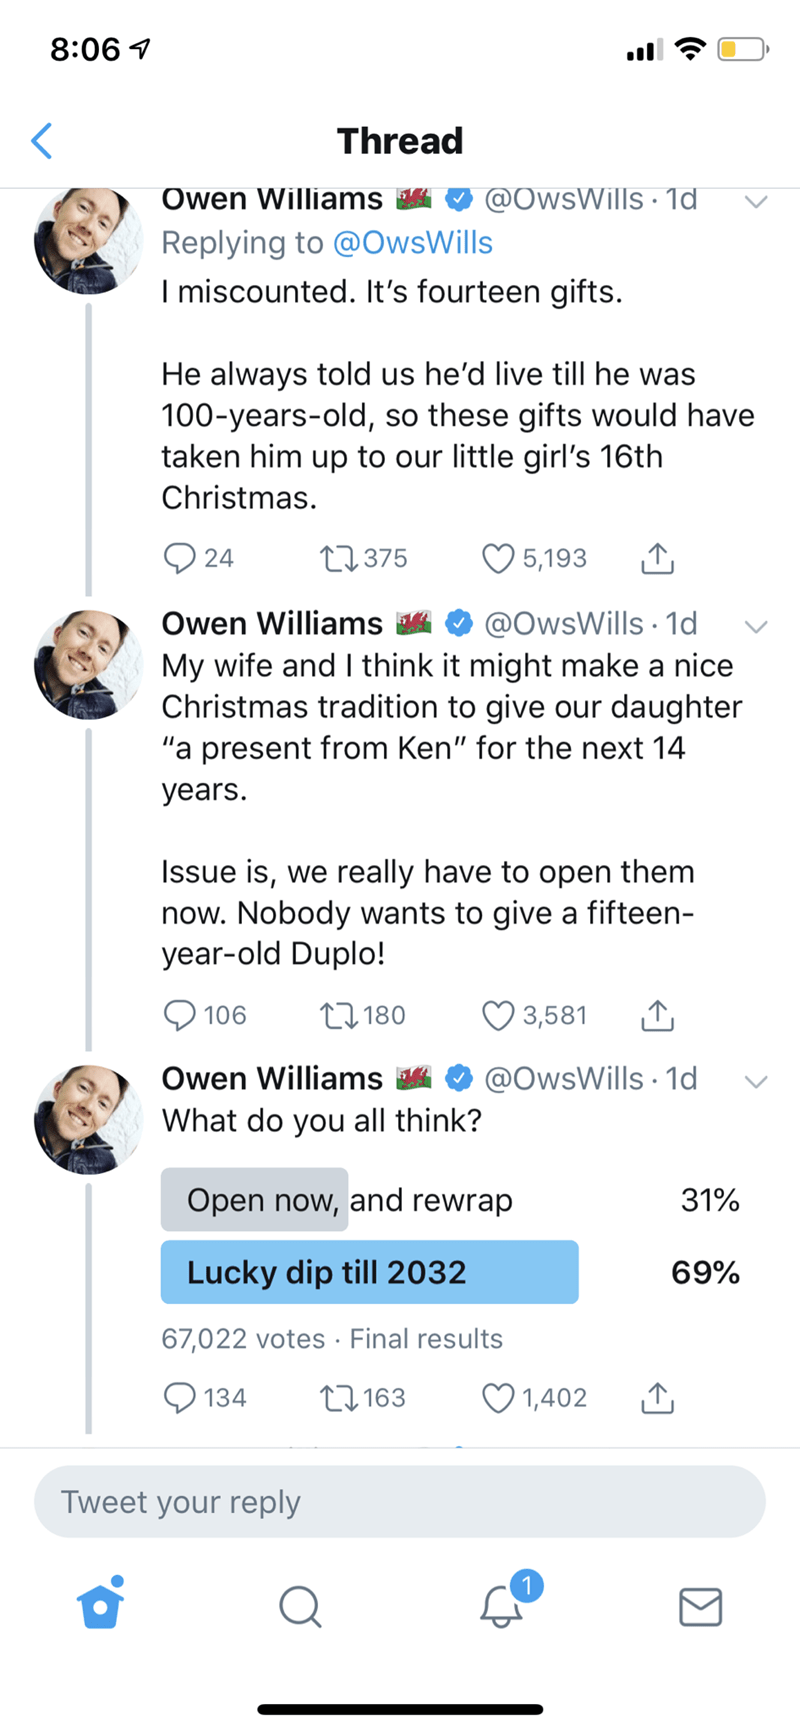 wholesome Christmas meme with guy asking if he should open gifts purchased in advance by late neighbor